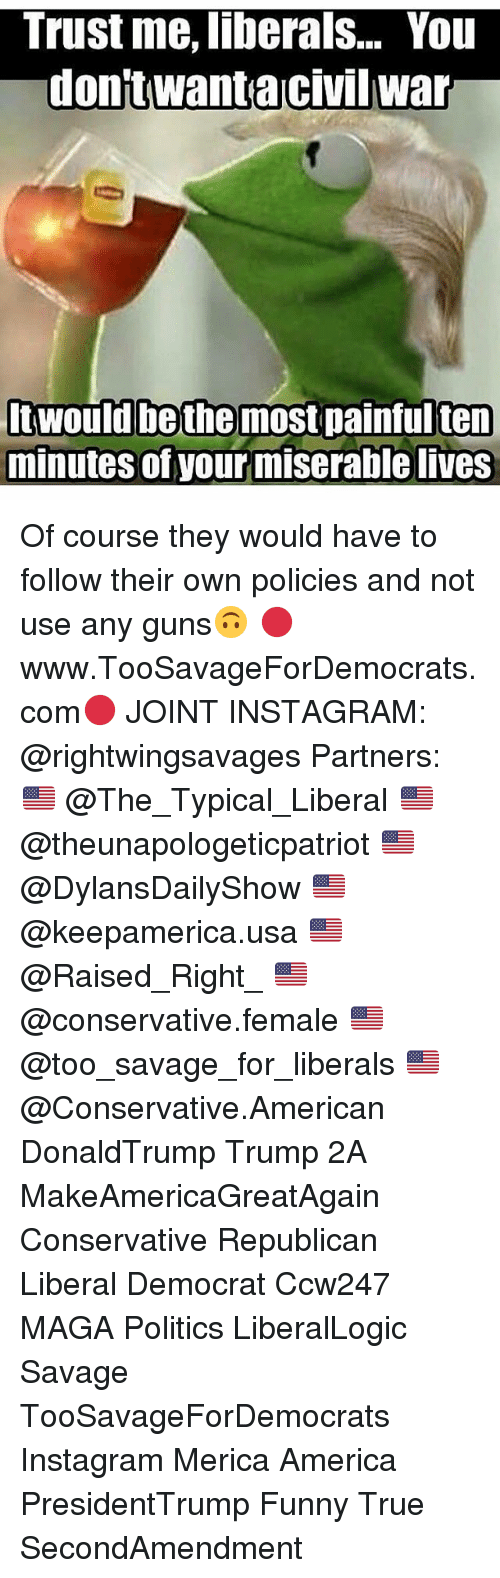 America, Funny, and Guns: Trust me, liberals... You  dontwanta Civilwar  bethe  most painfulten  minutes of your miserable lives  Itwould Of course they would have to follow their own policies and not use any guns🙃 🔴www.TooSavageForDemocrats.com🔴 JOINT INSTAGRAM: @rightwingsavages Partners: 🇺🇸 @The_Typical_Liberal 🇺🇸 @theunapologeticpatriot 🇺🇸 @DylansDailyShow 🇺🇸 @keepamerica.usa 🇺🇸@Raised_Right_ 🇺🇸@conservative.female 🇺🇸 @too_savage_for_liberals 🇺🇸 @Conservative.American DonaldTrump Trump 2A MakeAmericaGreatAgain Conservative Republican Liberal Democrat Ccw247 MAGA Politics LiberalLogic Savage TooSavageForDemocrats Instagram Merica America PresidentTrump Funny True SecondAmendment